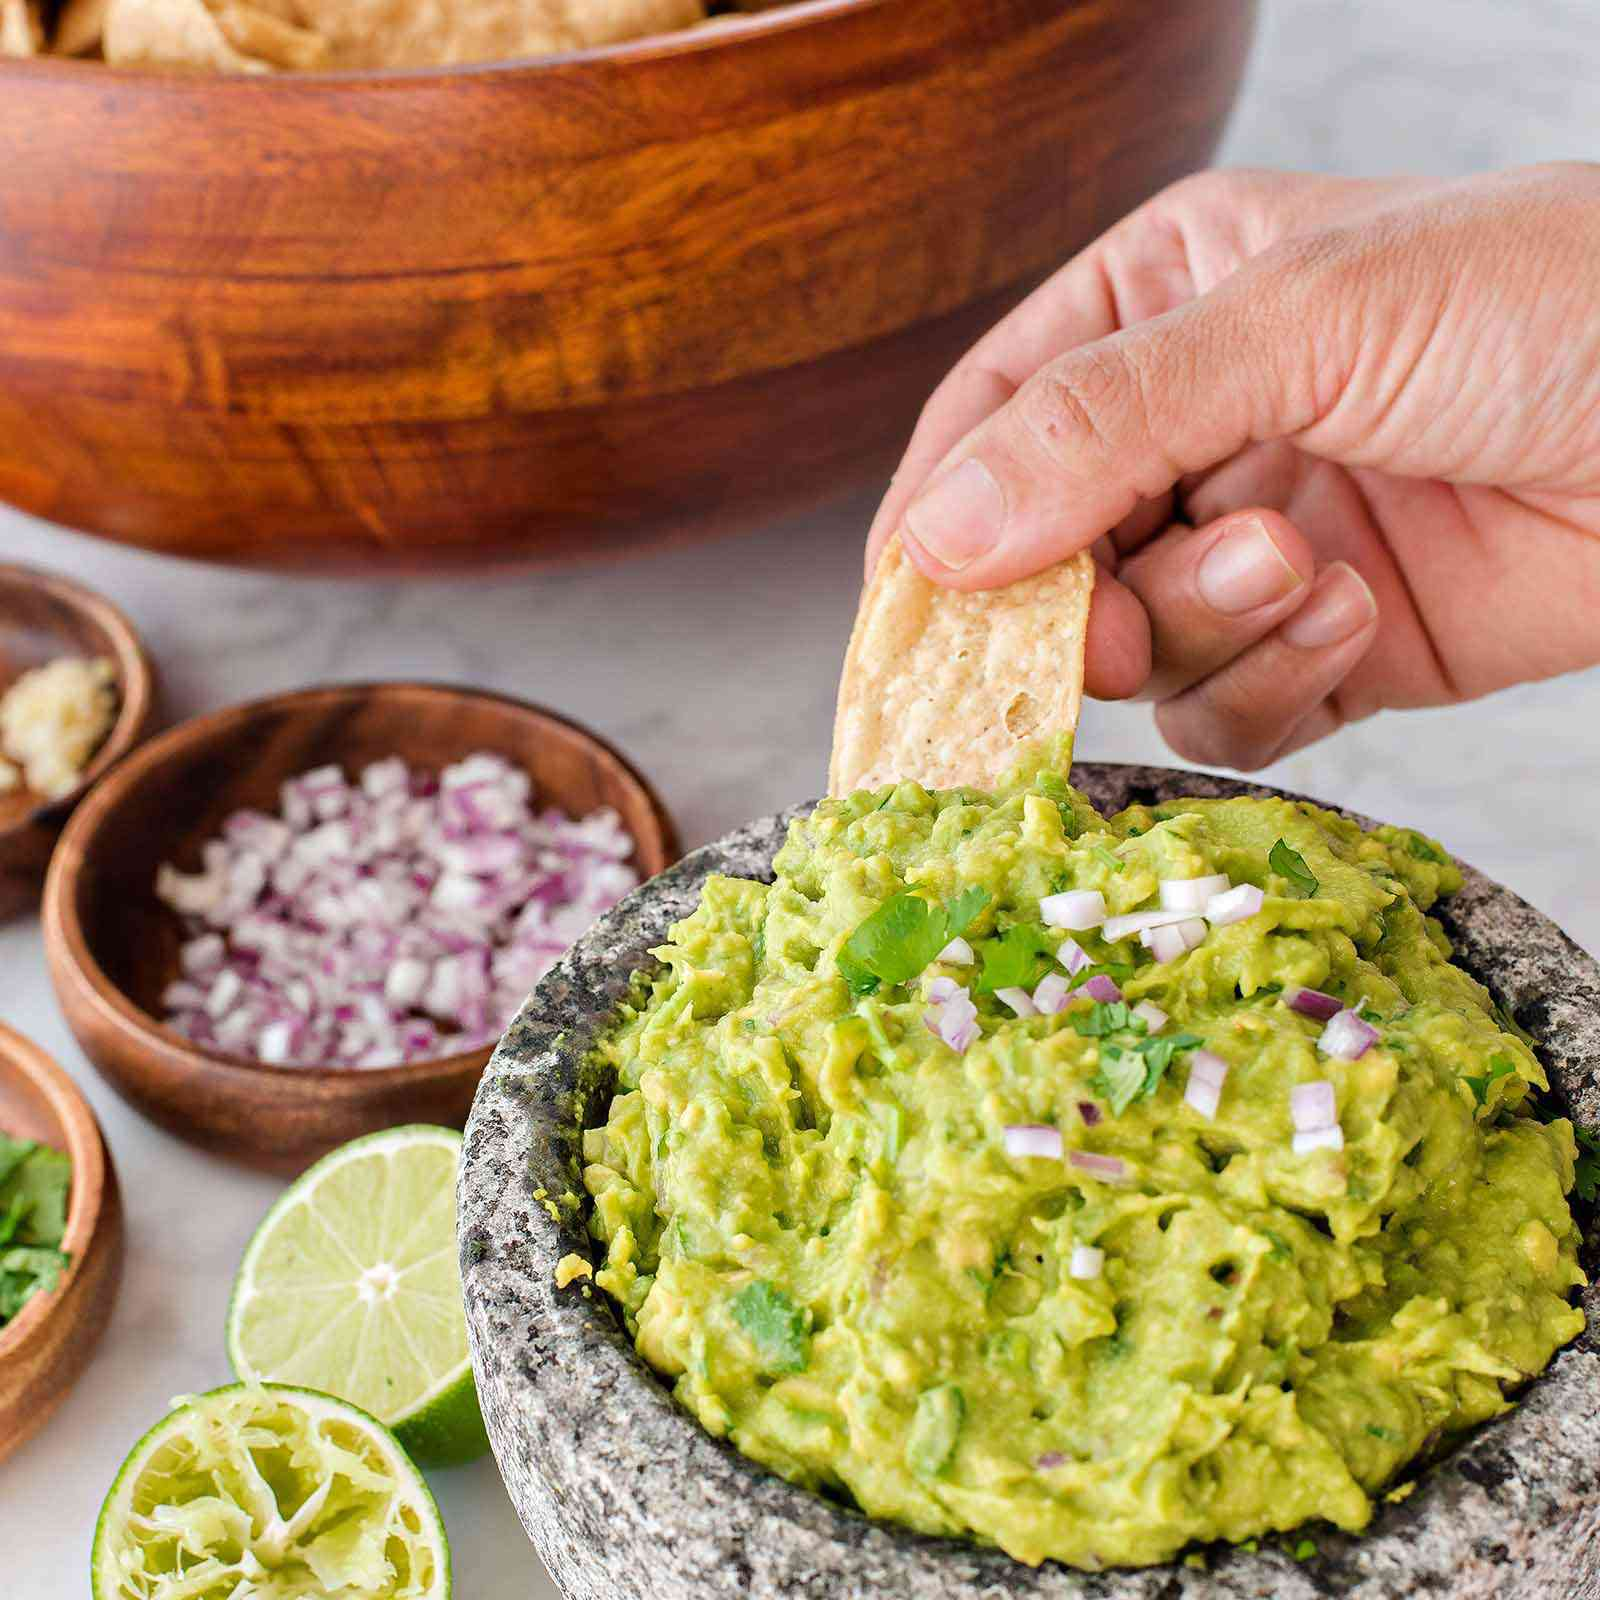 How to Make Guacamole - guacamole in a bowl with someone dipping a chip into it